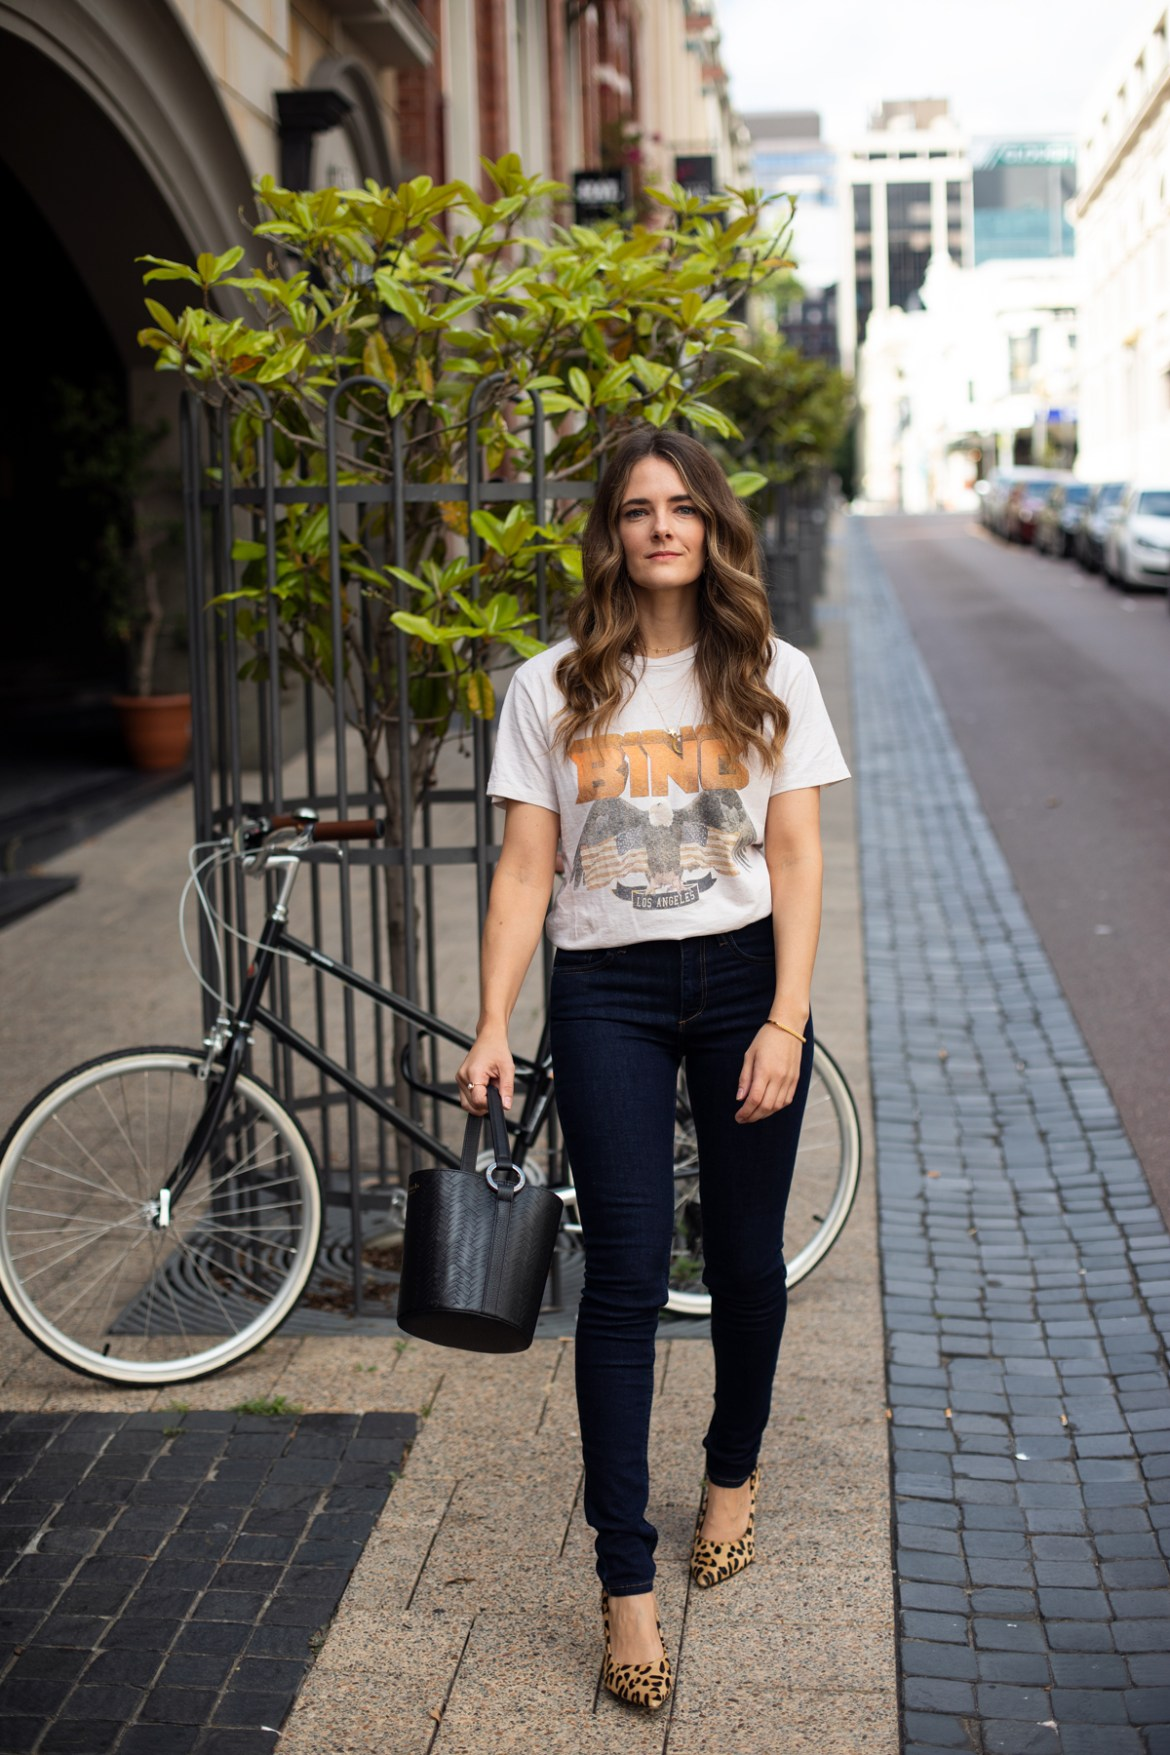 Anine Bing vintage tee outfit with Reiko skinny jeans and leopard print heels worn by fashion blogger Jenelle Witty from Inspiring Wit from a blog post about big little goals to achieve in 2019